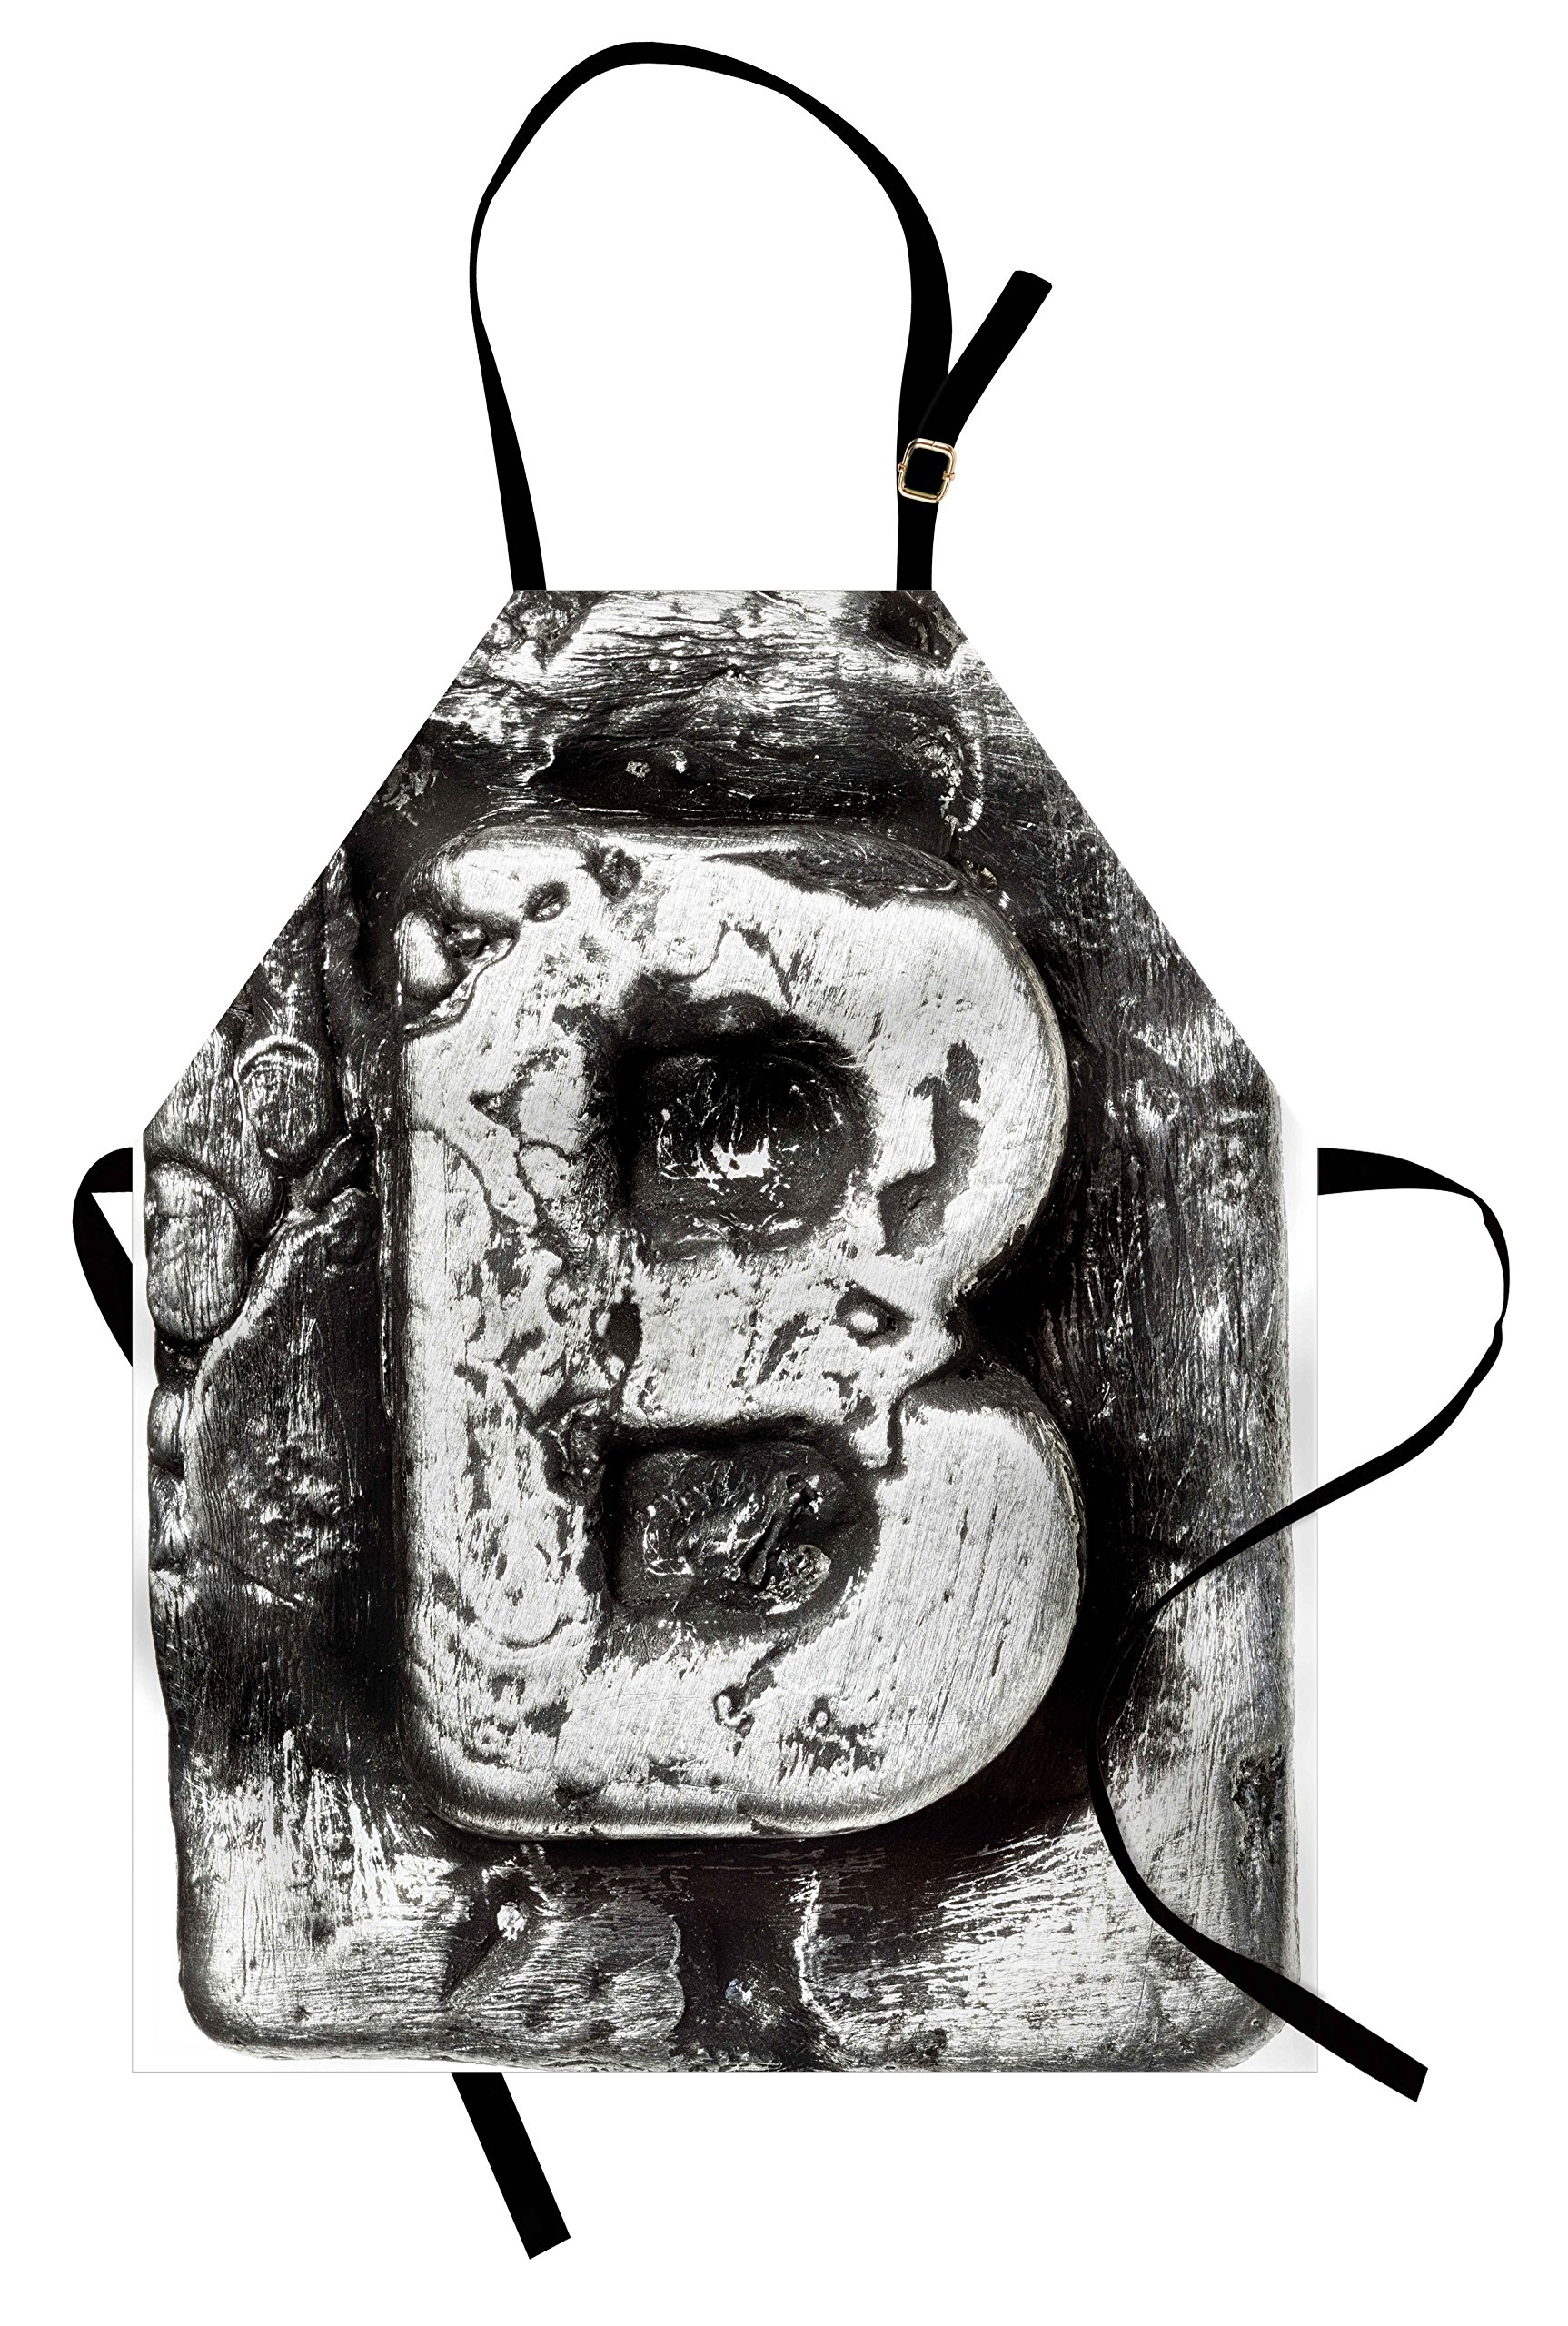 Ambesonne Letter B Apron, Steel Aged B with Toned Cracks and Distressed Effects Ceramic Inspired Print, Unisex Kitchen Bib Apron with Adjustable Neck for Cooking Baking Gardening, Silver Grey